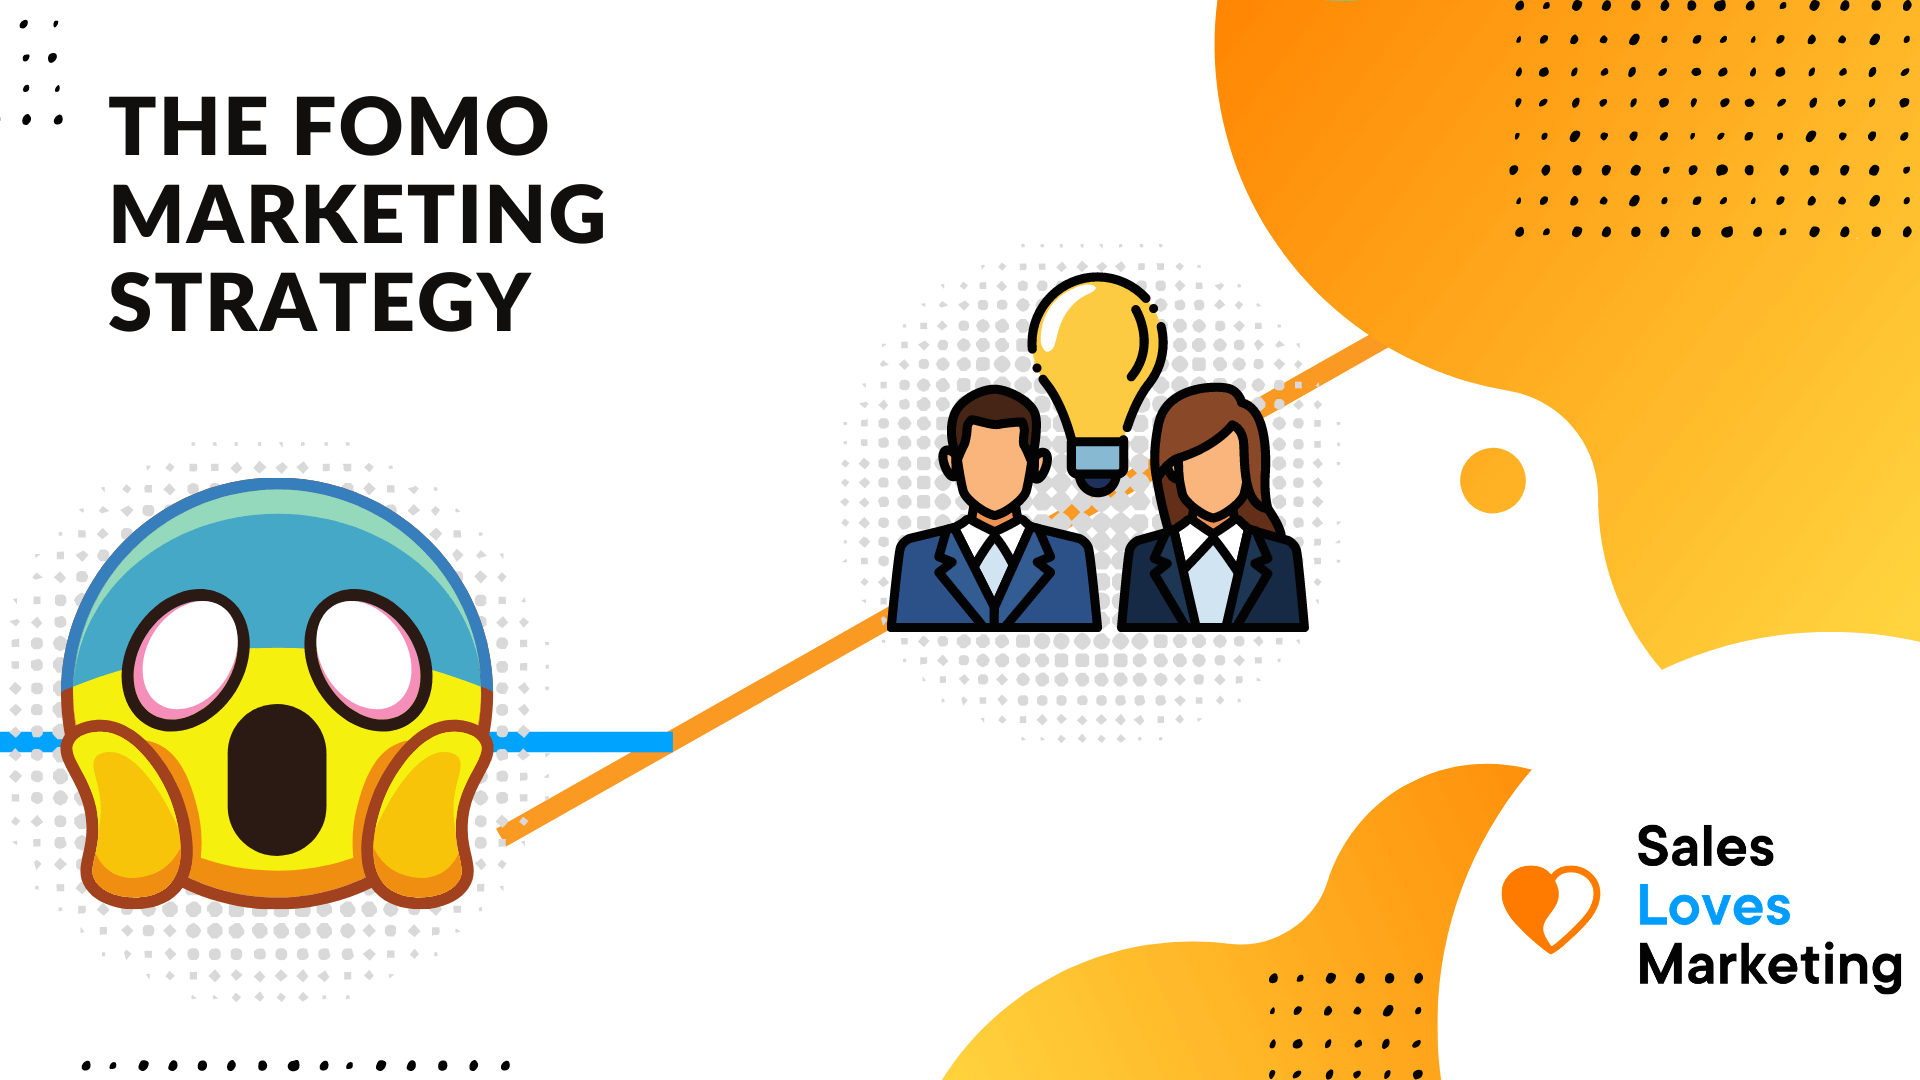 Read all about FOMO marketing and the different use cases.